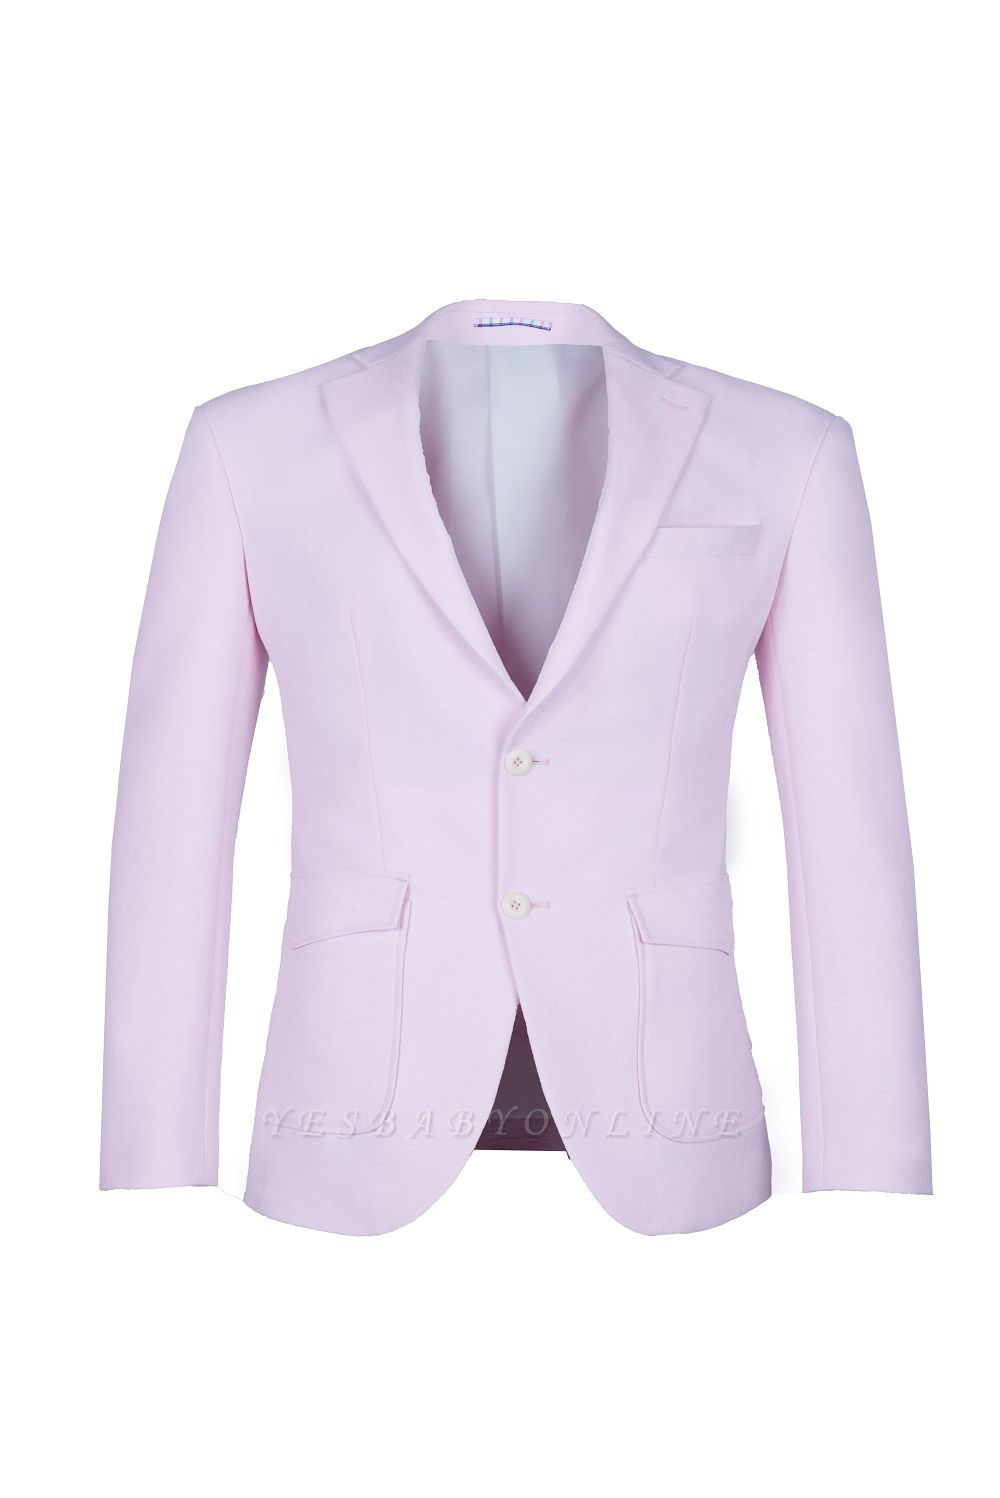 Candy Pink High Quality Single Breasted Peak Lapel Wedding Suit